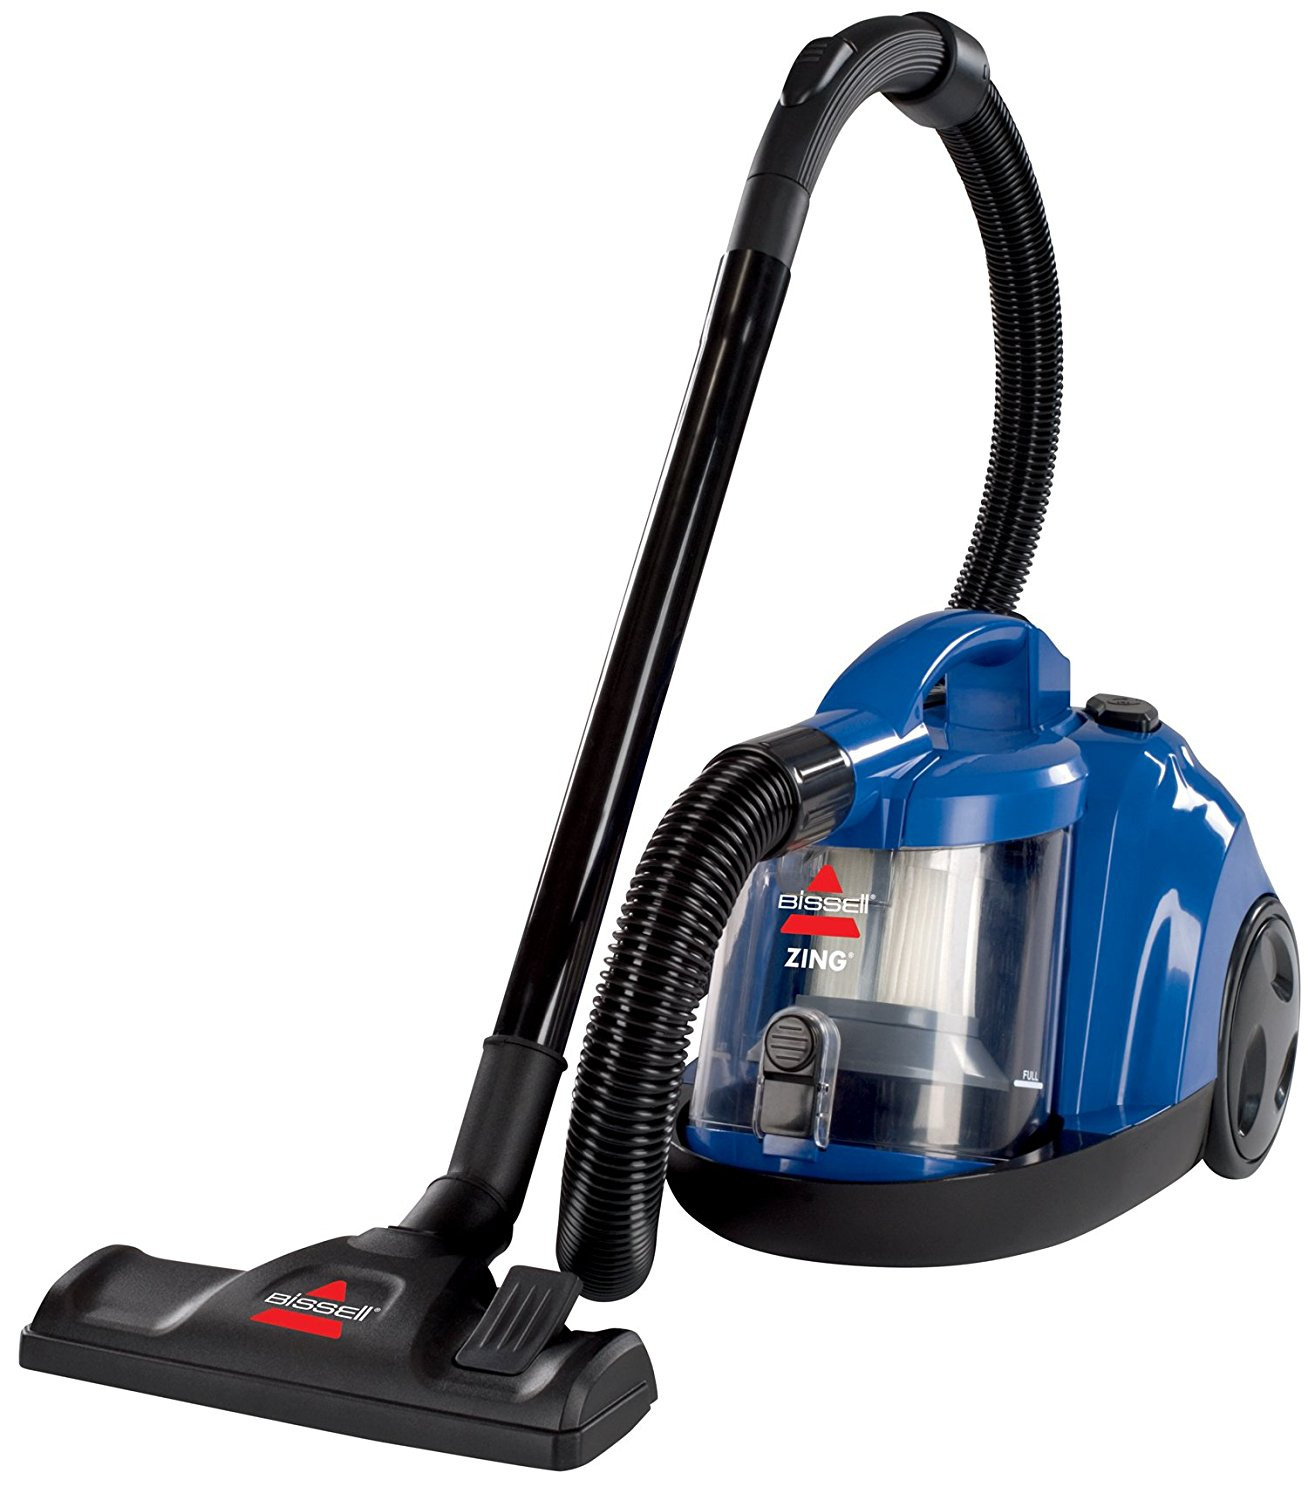 Bissell Hardwood Floor Expert Vacuum Of 10 Best Vacuum for Hardwood Floors In 2018 Complete Guide In Bissell Zing Rewind Bagless Canister Vacuum Corded